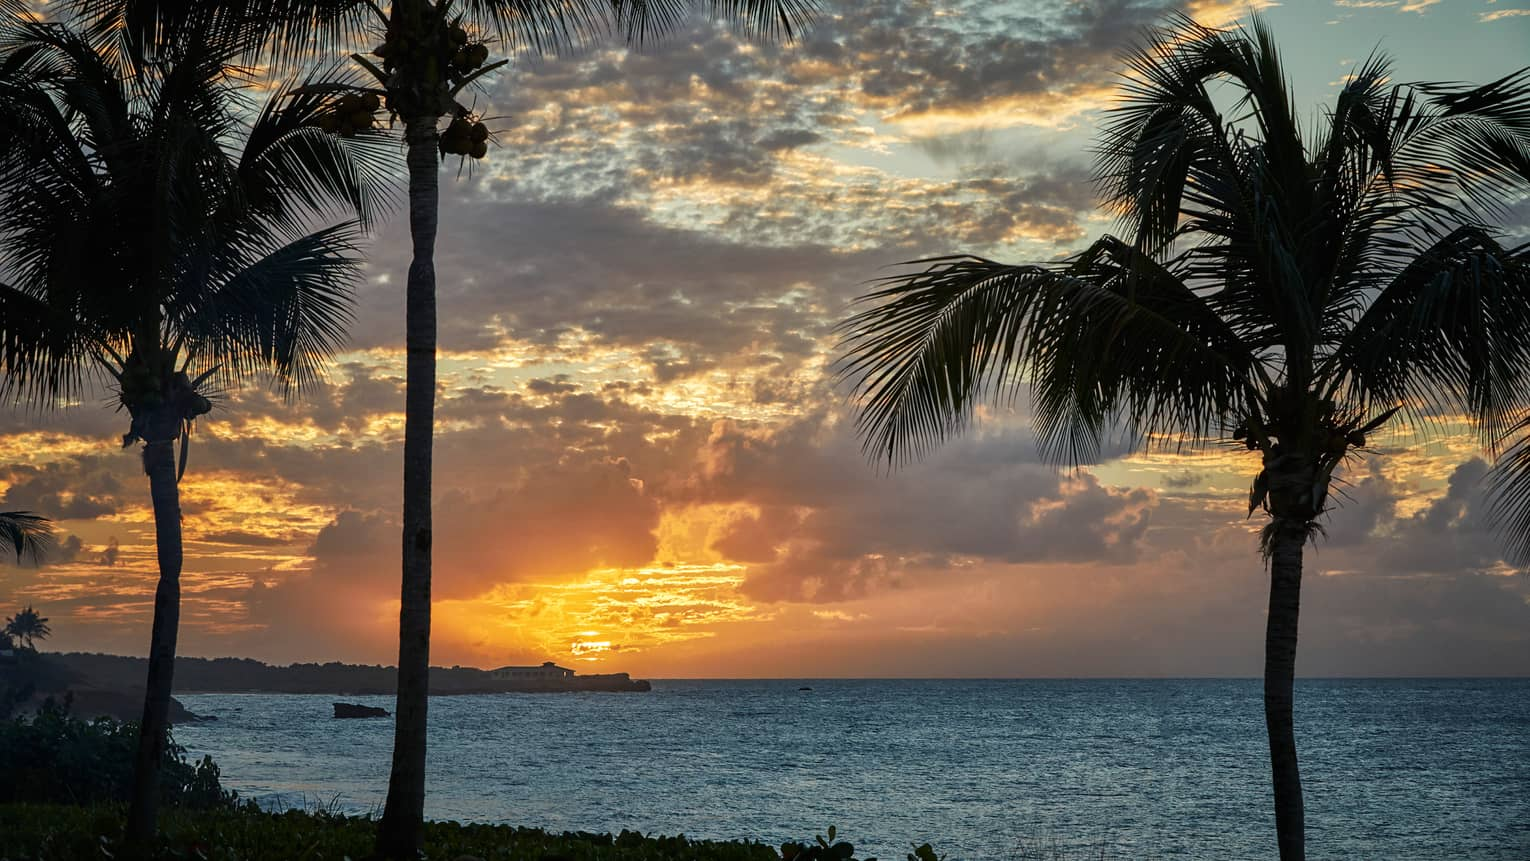 Silhouette of three tall palm trees against sunset, ocean